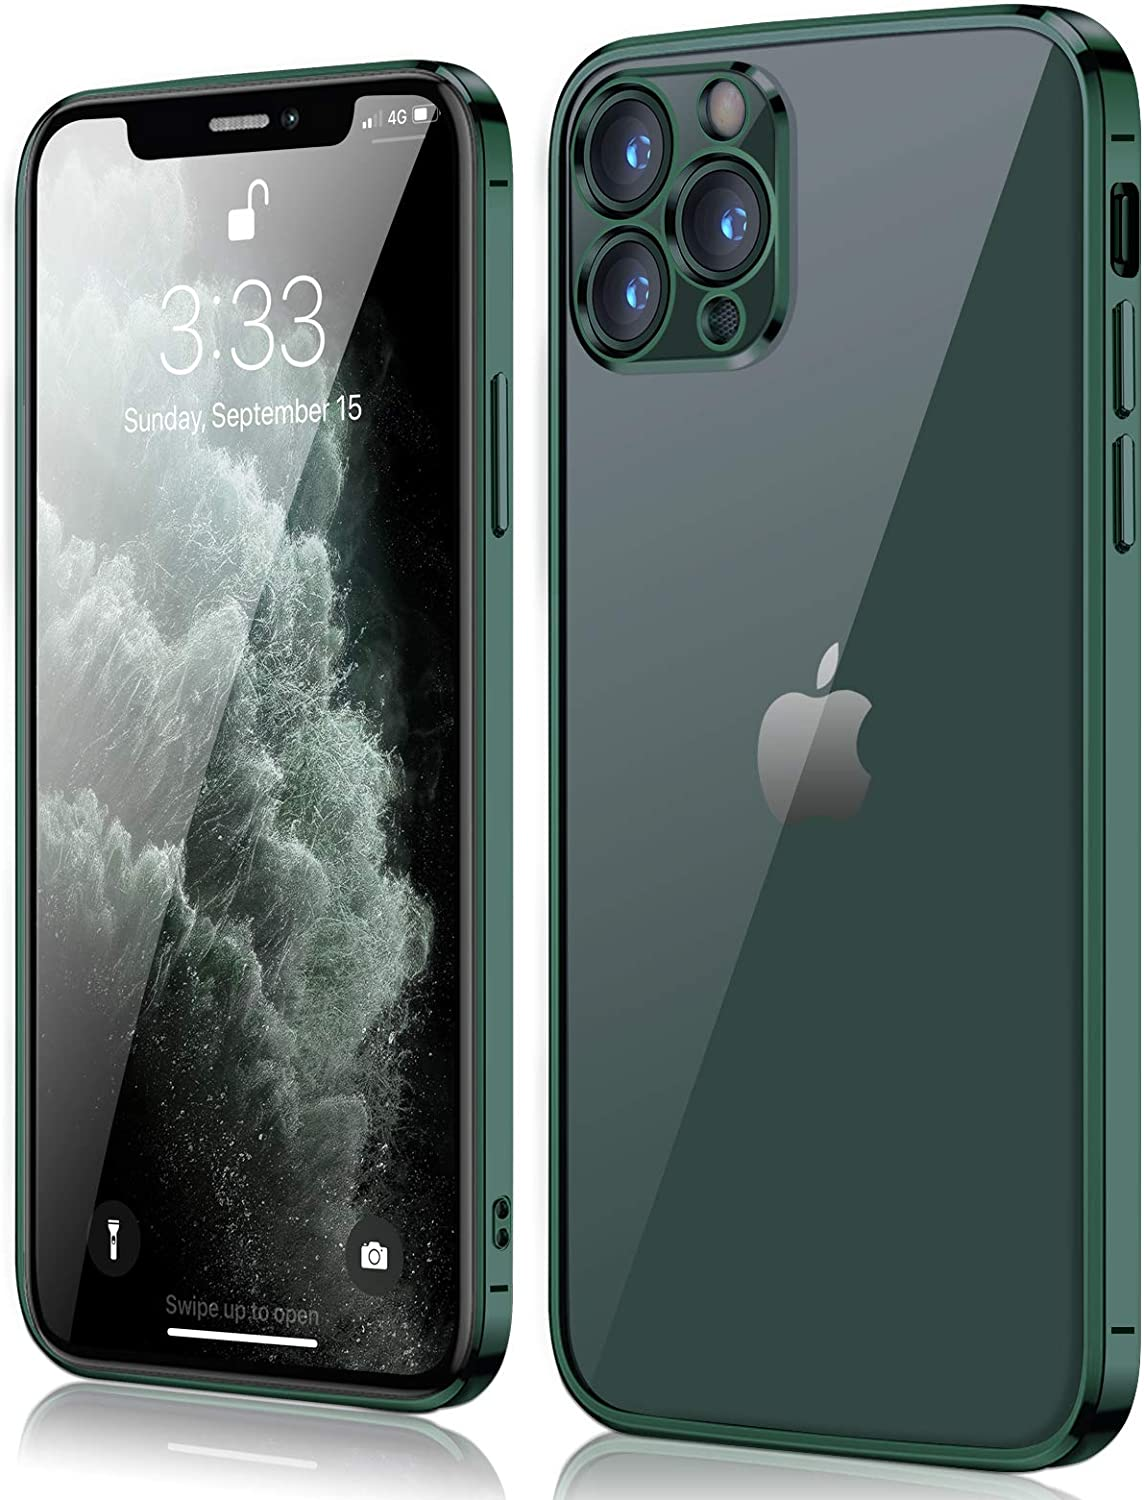 Compatible with iPhone 11 Pro Max Case, peafowl Clear Slim Soft Full Coverage Protective TPU Silicone Cell Phone Case Deep Green for iPhone 11 Pro Max (6.5 inch)